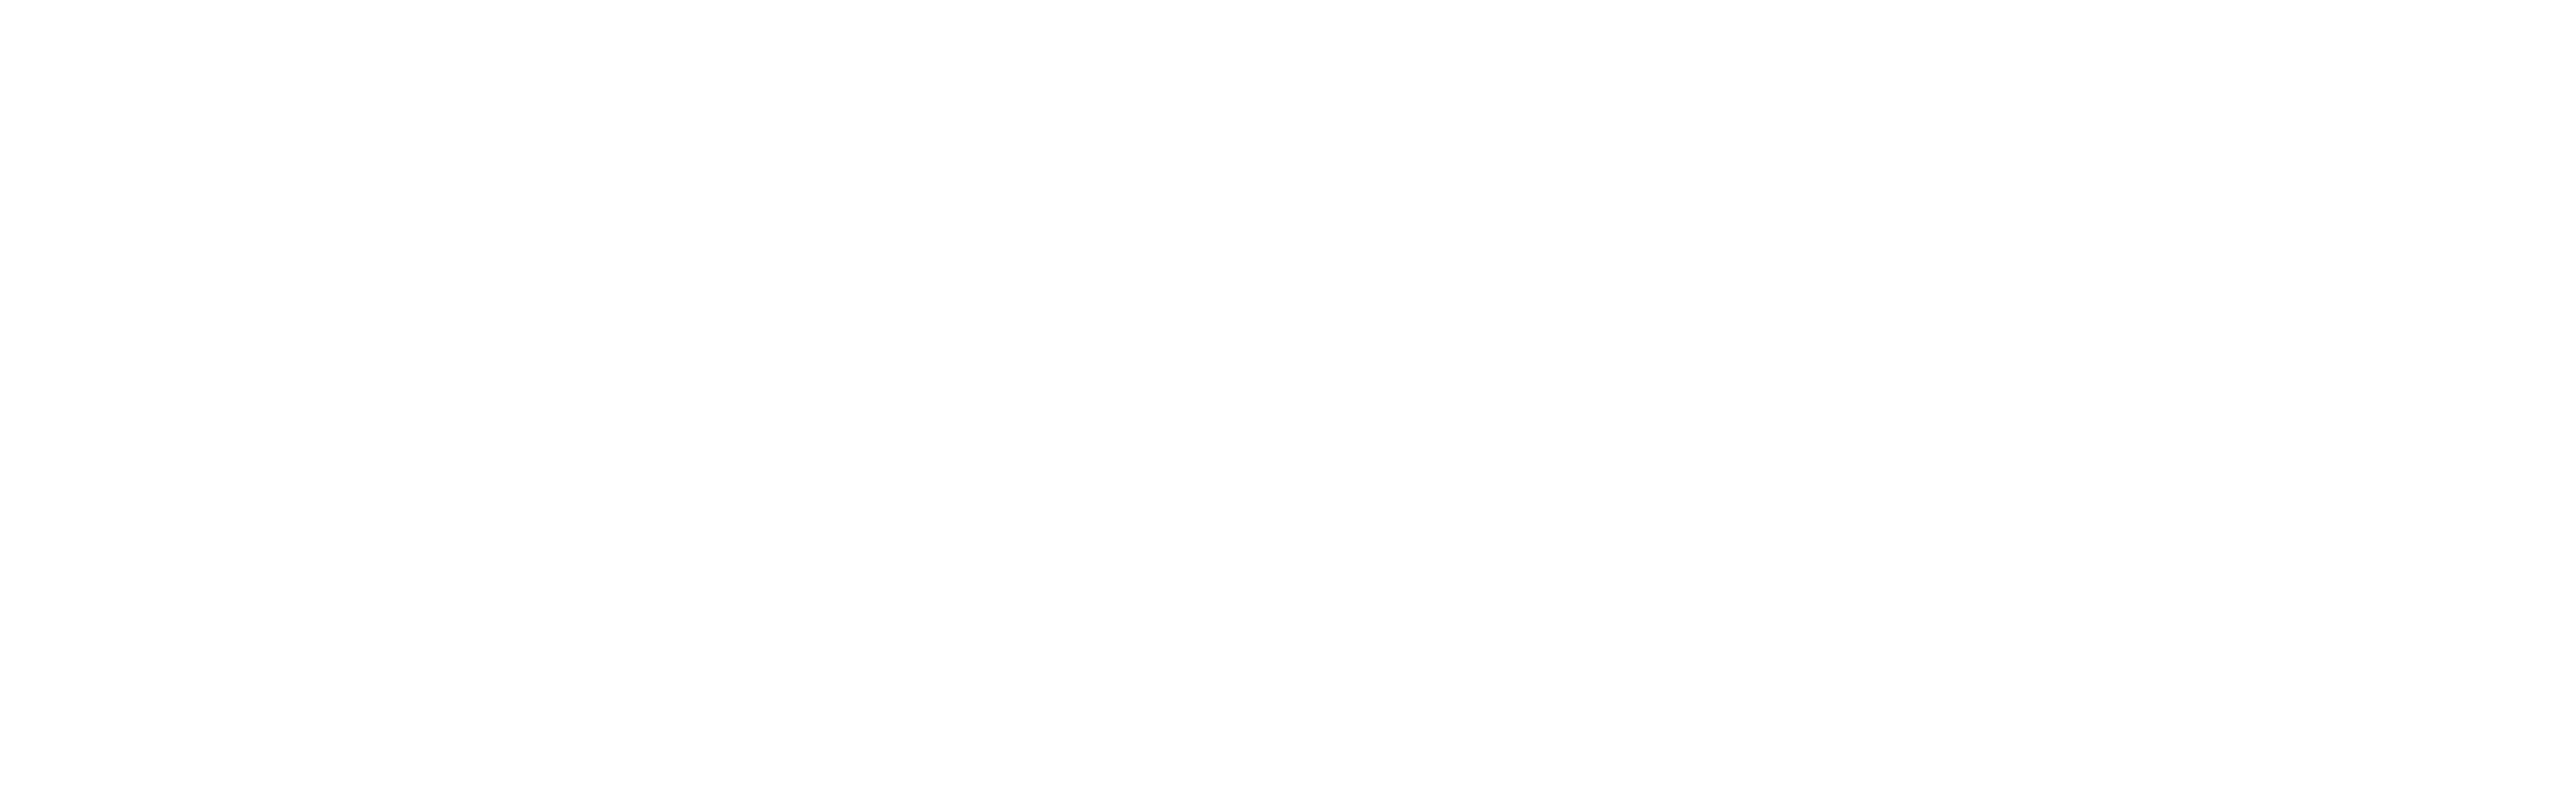 IEEE-CS USF Student Chapter